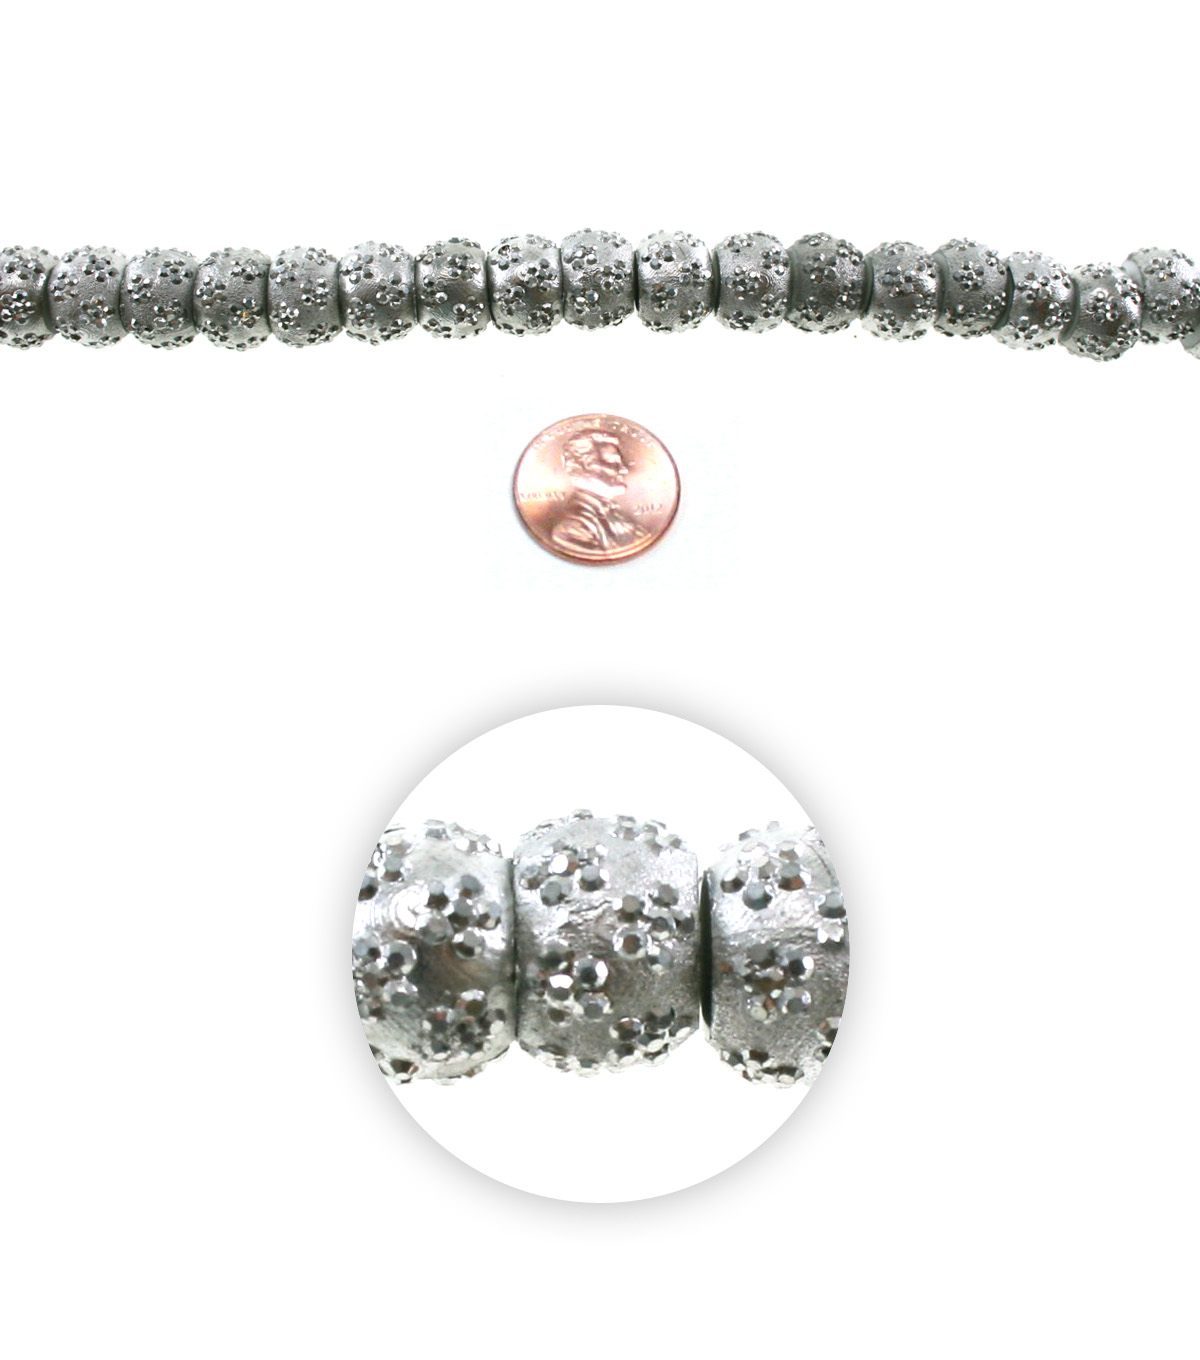 Advantus/Sulyn 7 in Retro Chic Small Bling, Silver Glitz